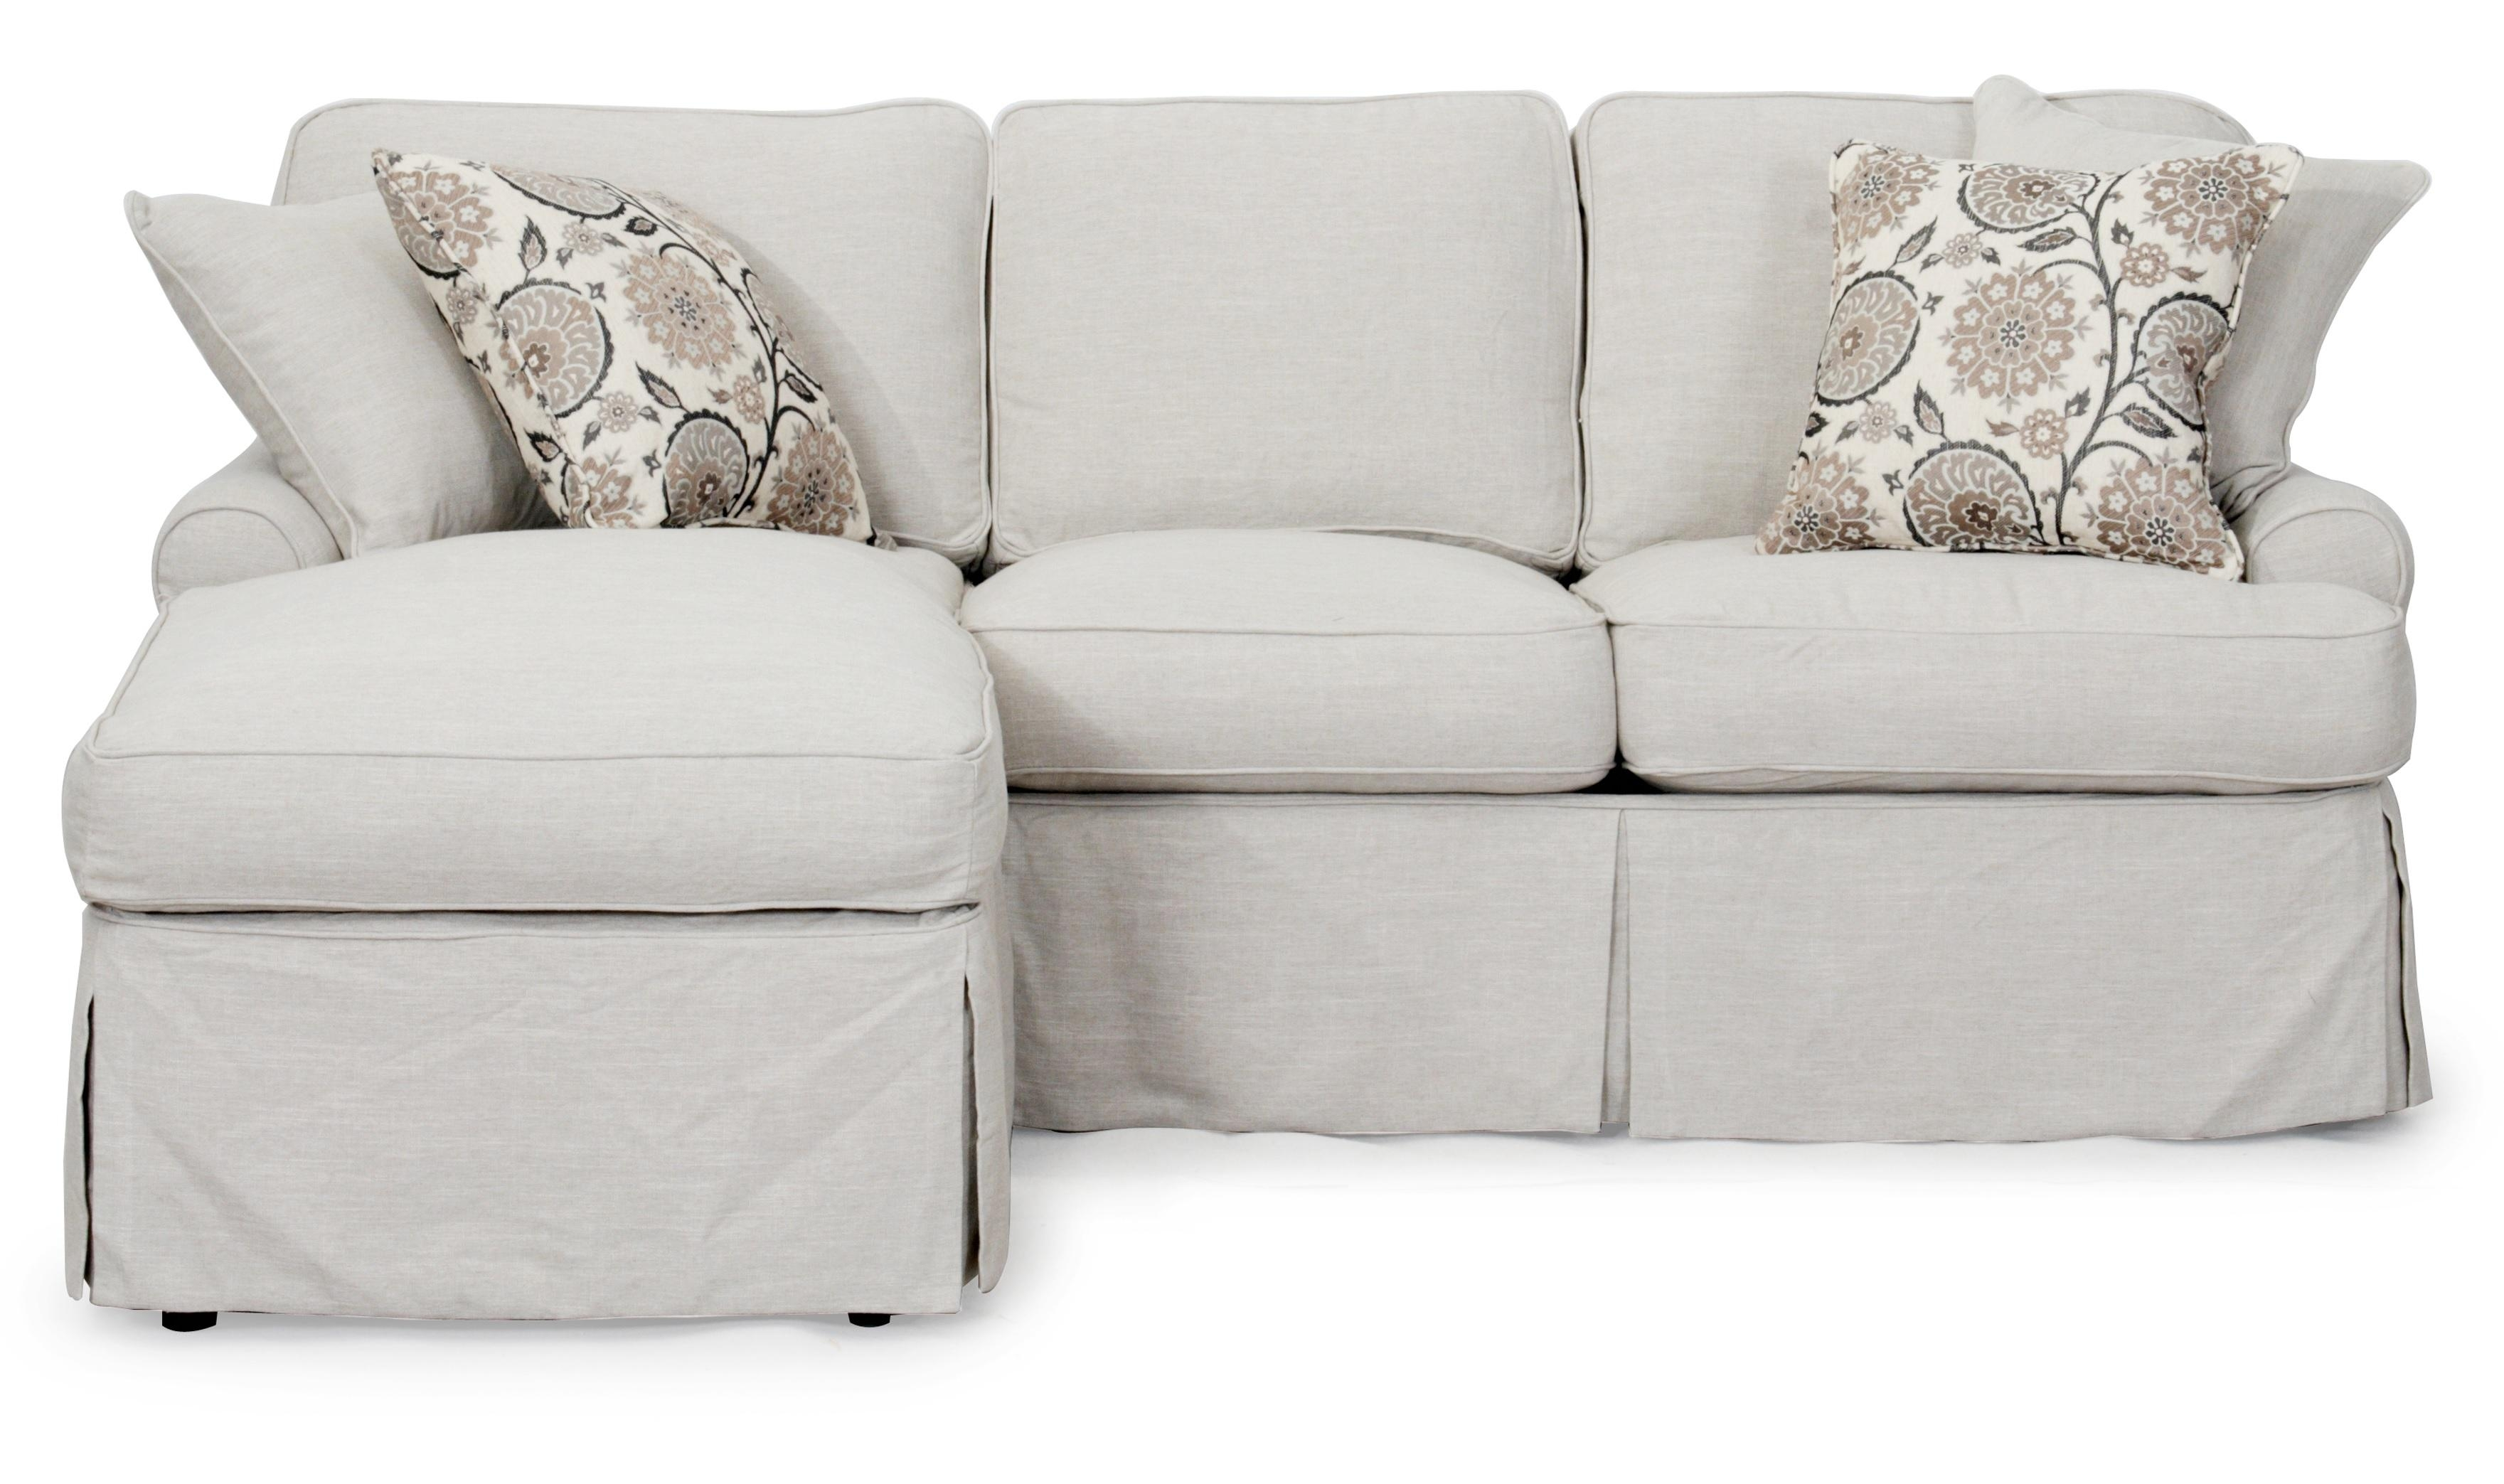 Sunset Trading Horizon Slipcovered Sleeper Sofa And Chaise In Intended For Slipcovers For Sleeper Sofas (View 12 of 20)